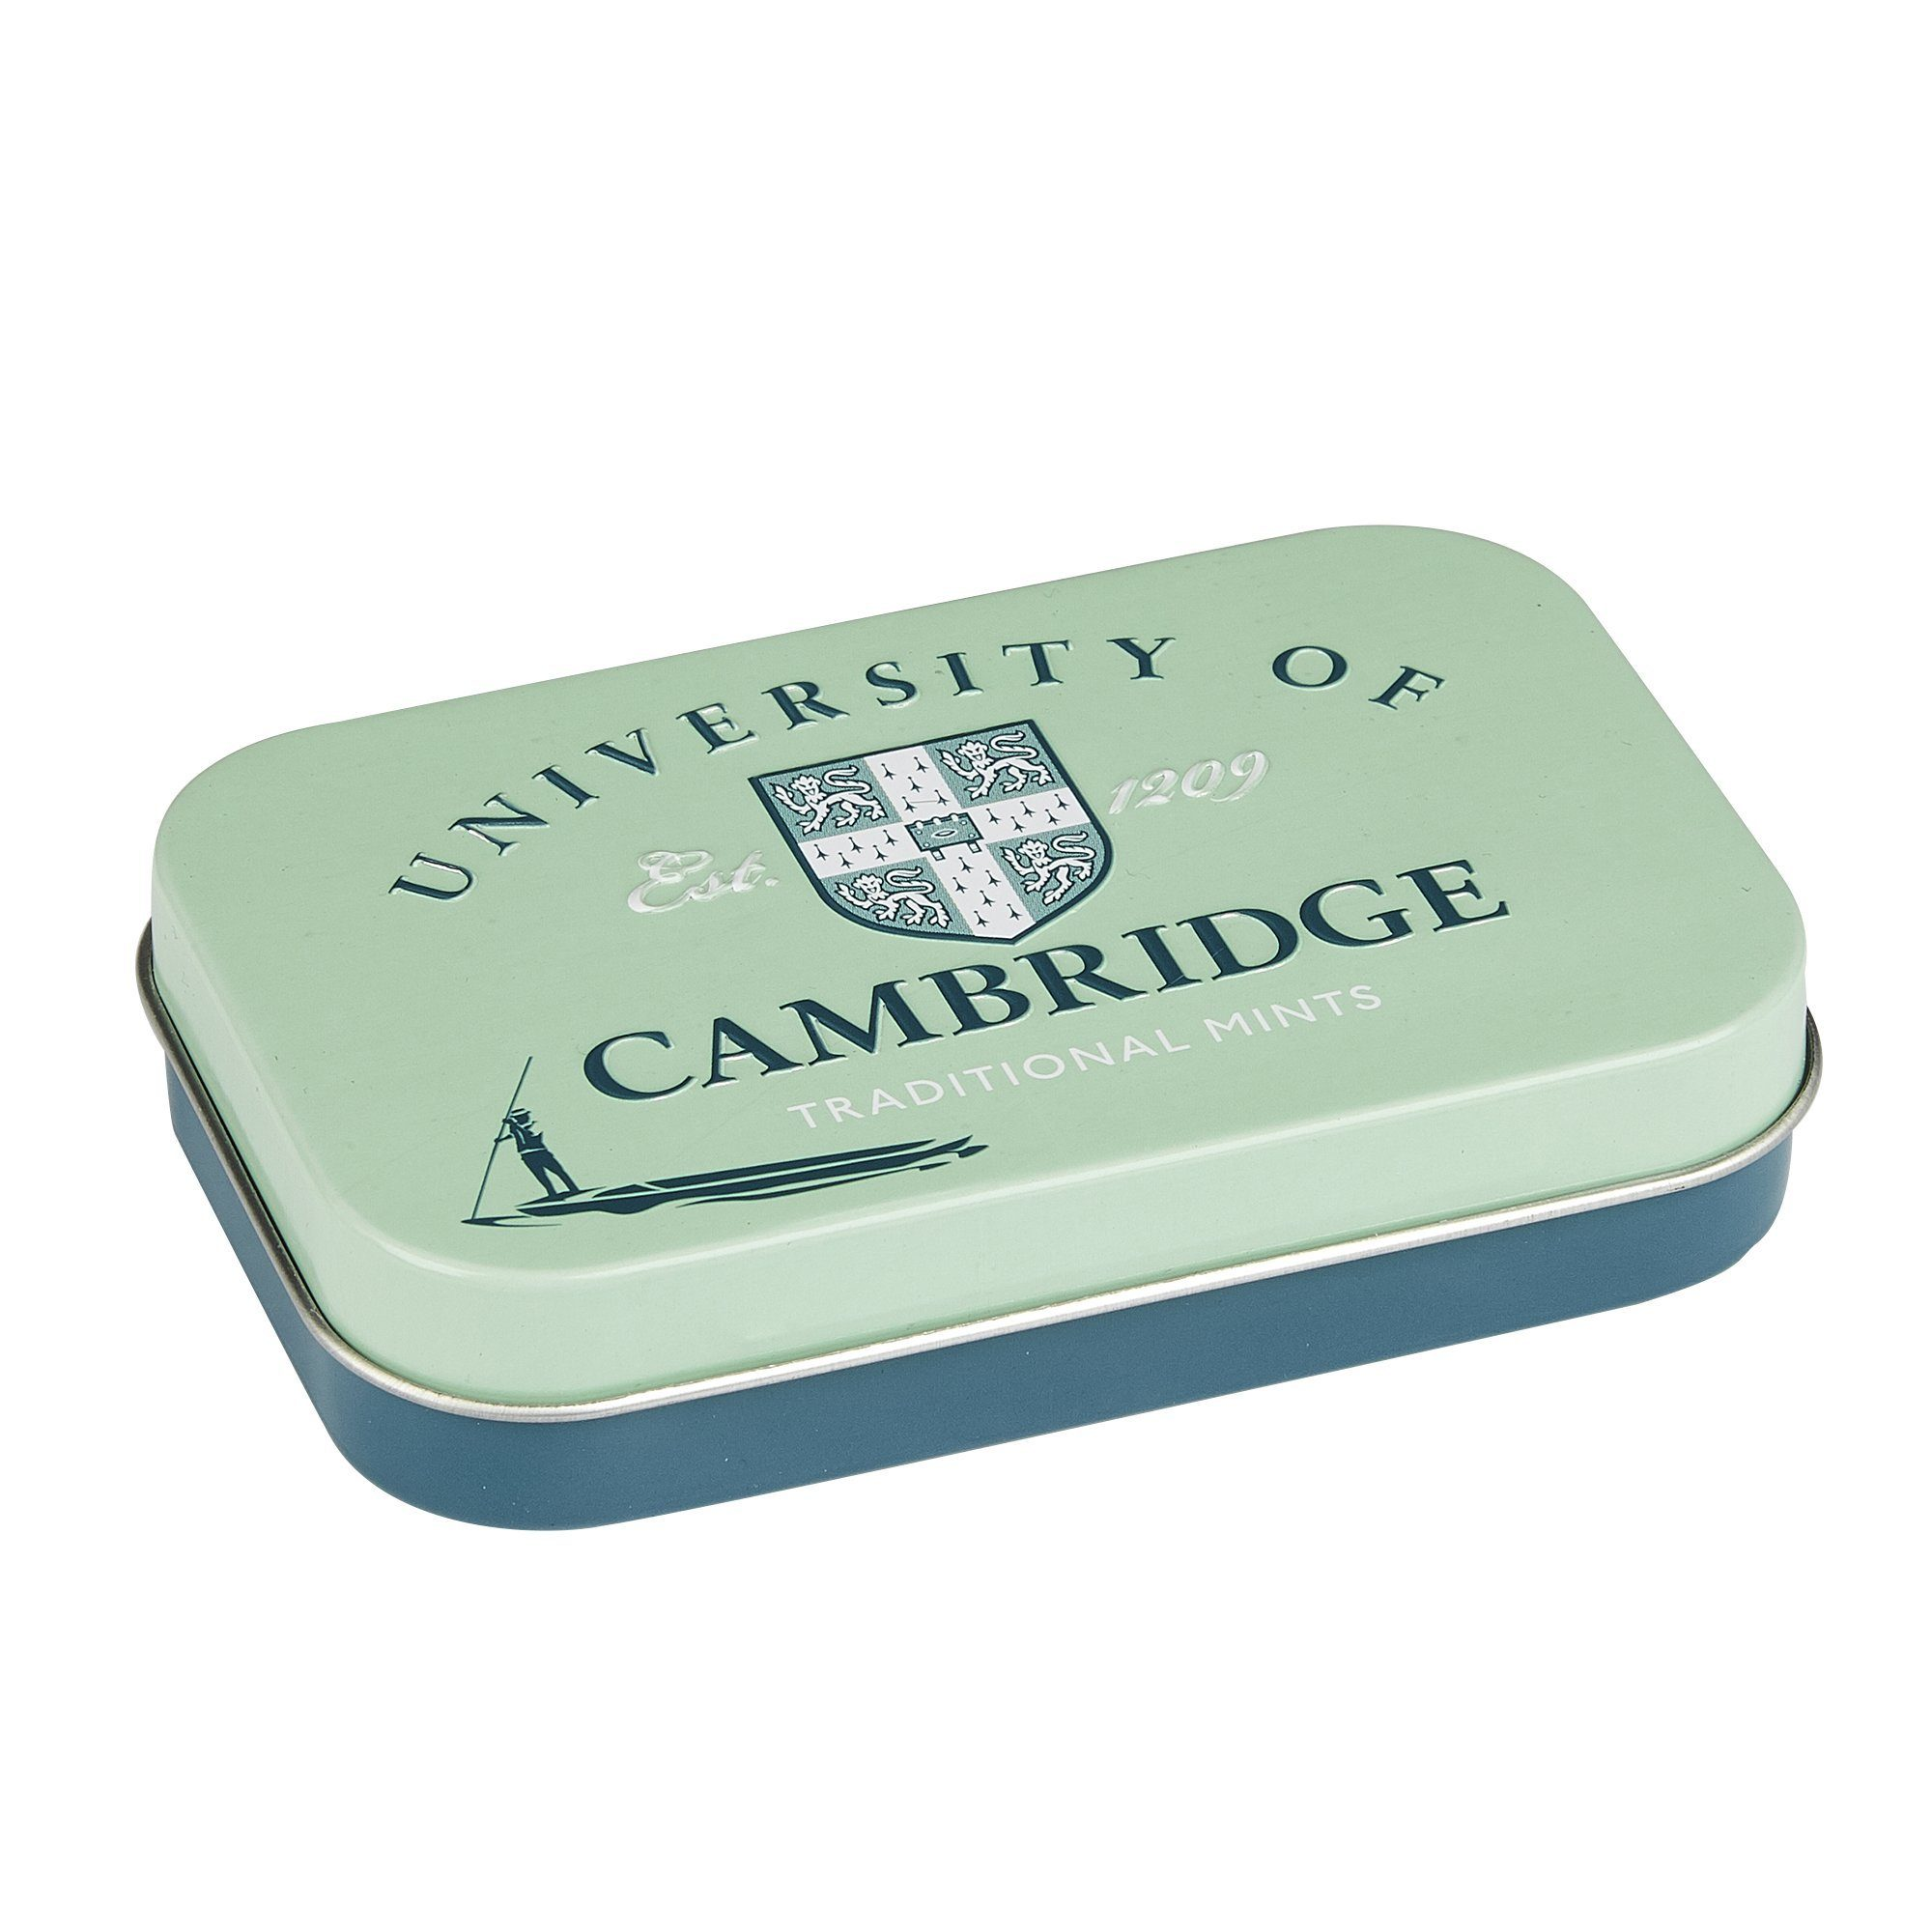 University of Cambridge Sugar Free Mints Pocket Tin 35g Mints New English Teas